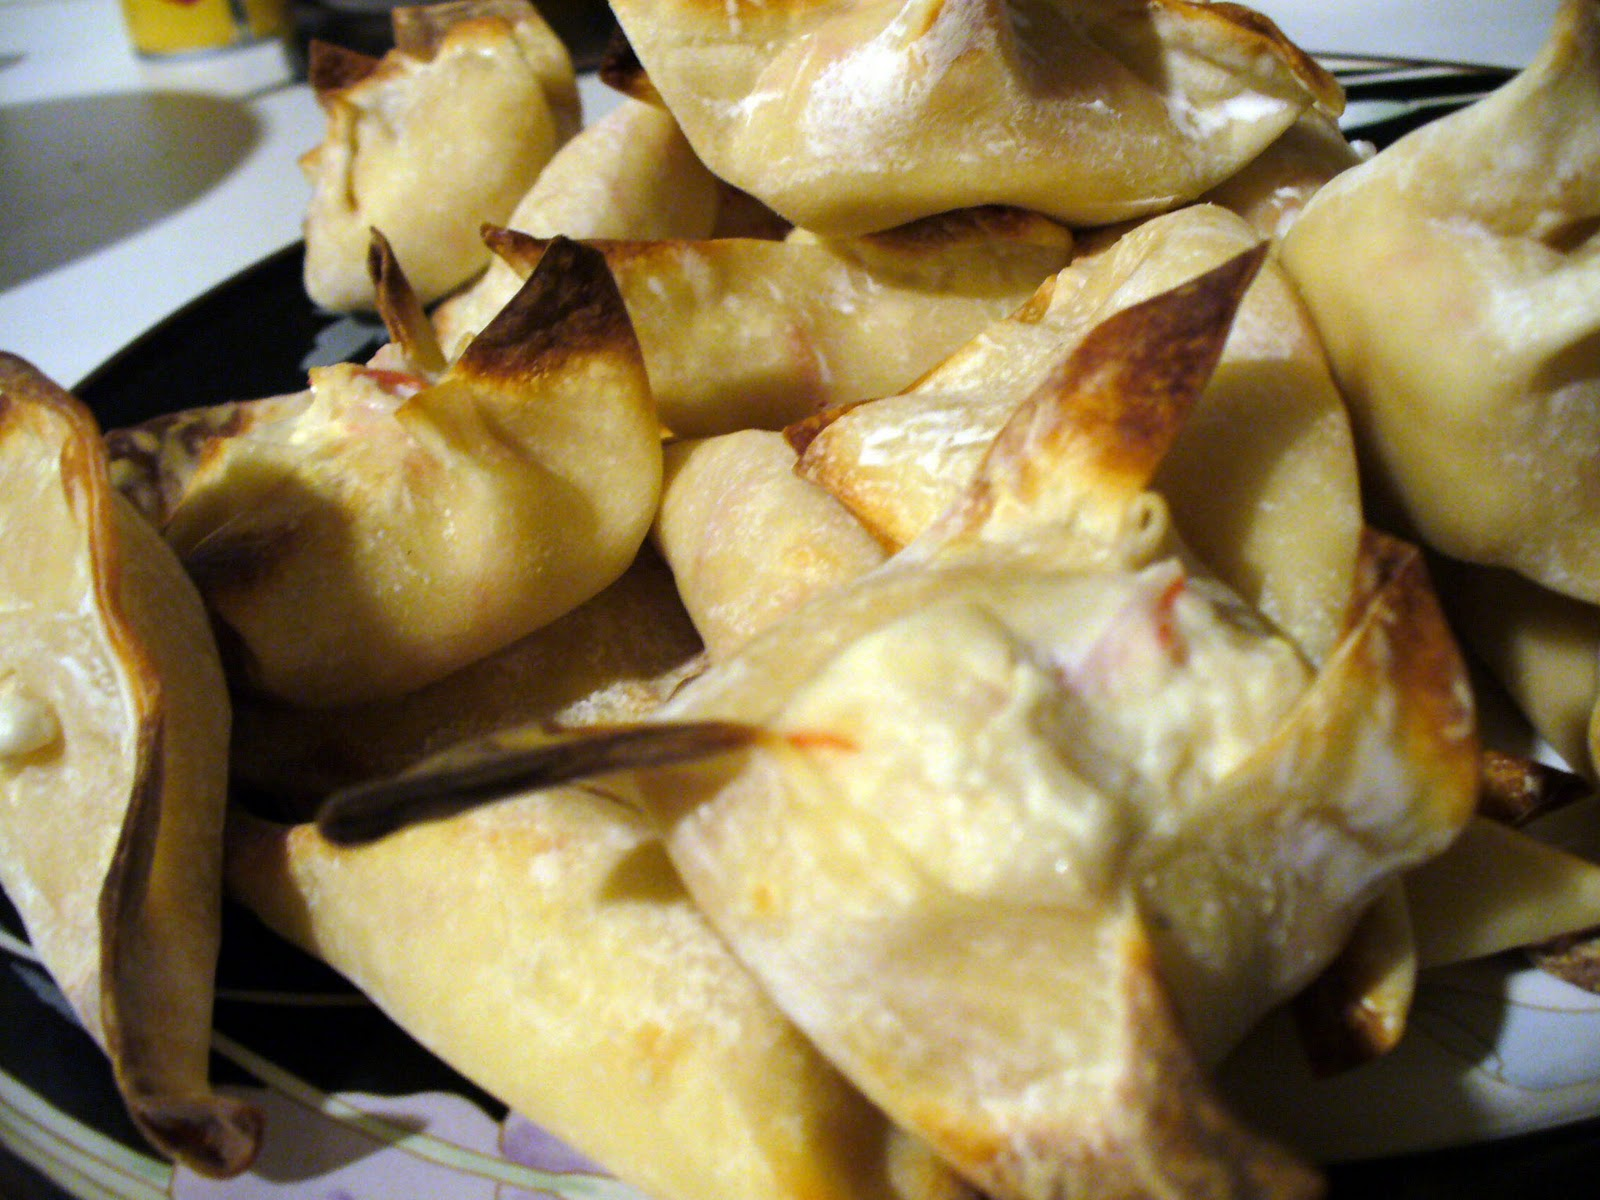 Weight Watchers Find - Baked Crab Rangoon!!! - A Sparkly Life for Me